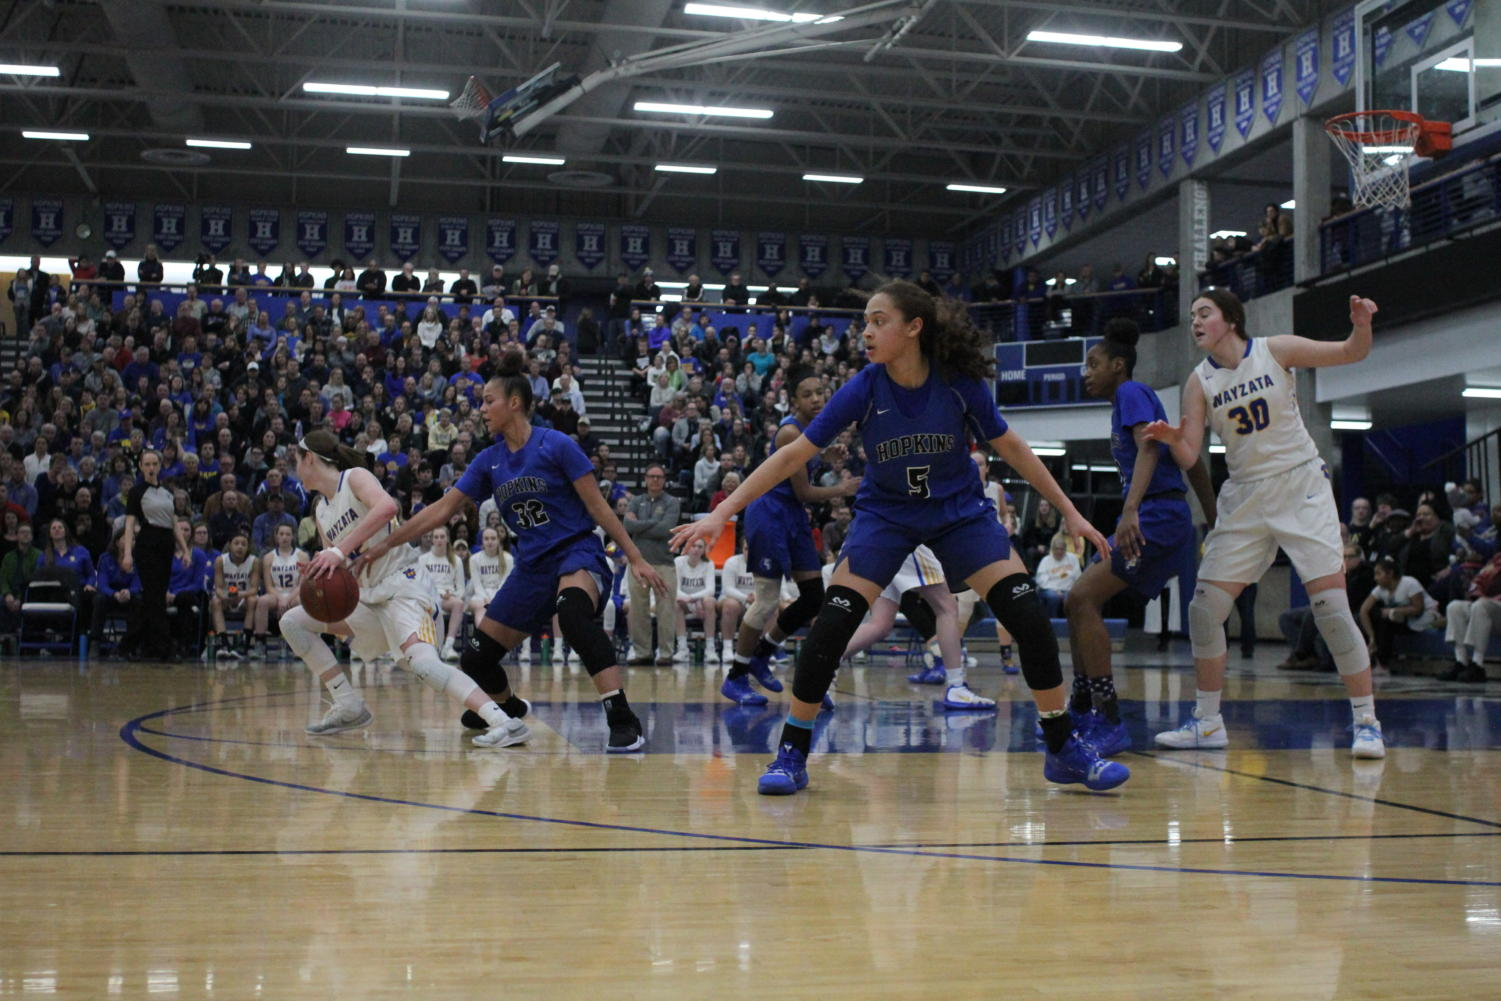 Amaya Battle, freshman, looks on as the Royals play defense. Battle and the Royals take on Lakeville tomorrow night.